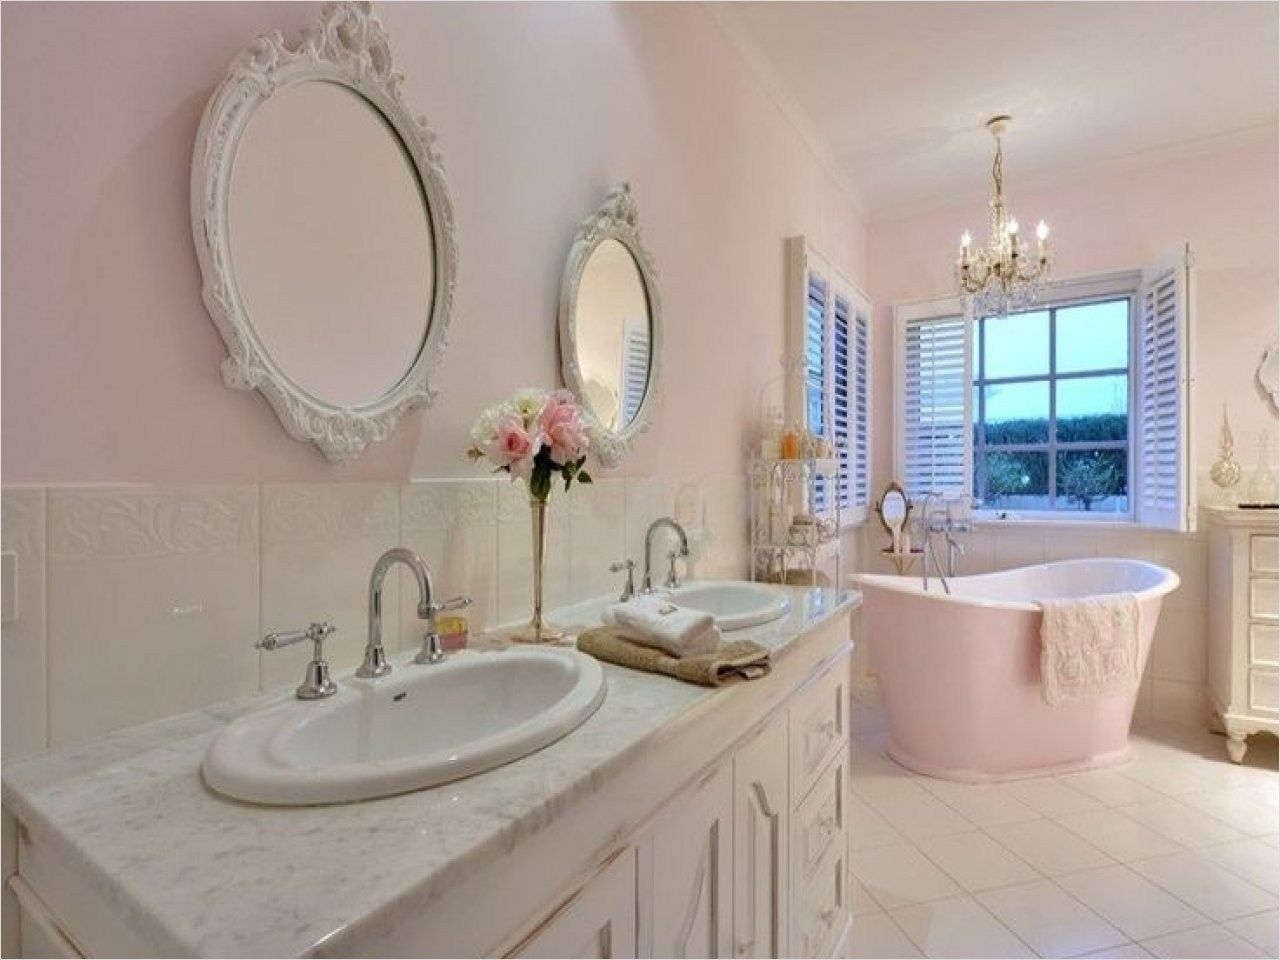 42 Gorgeous Shabby Chic Bathroom Accessories Ideas With Images